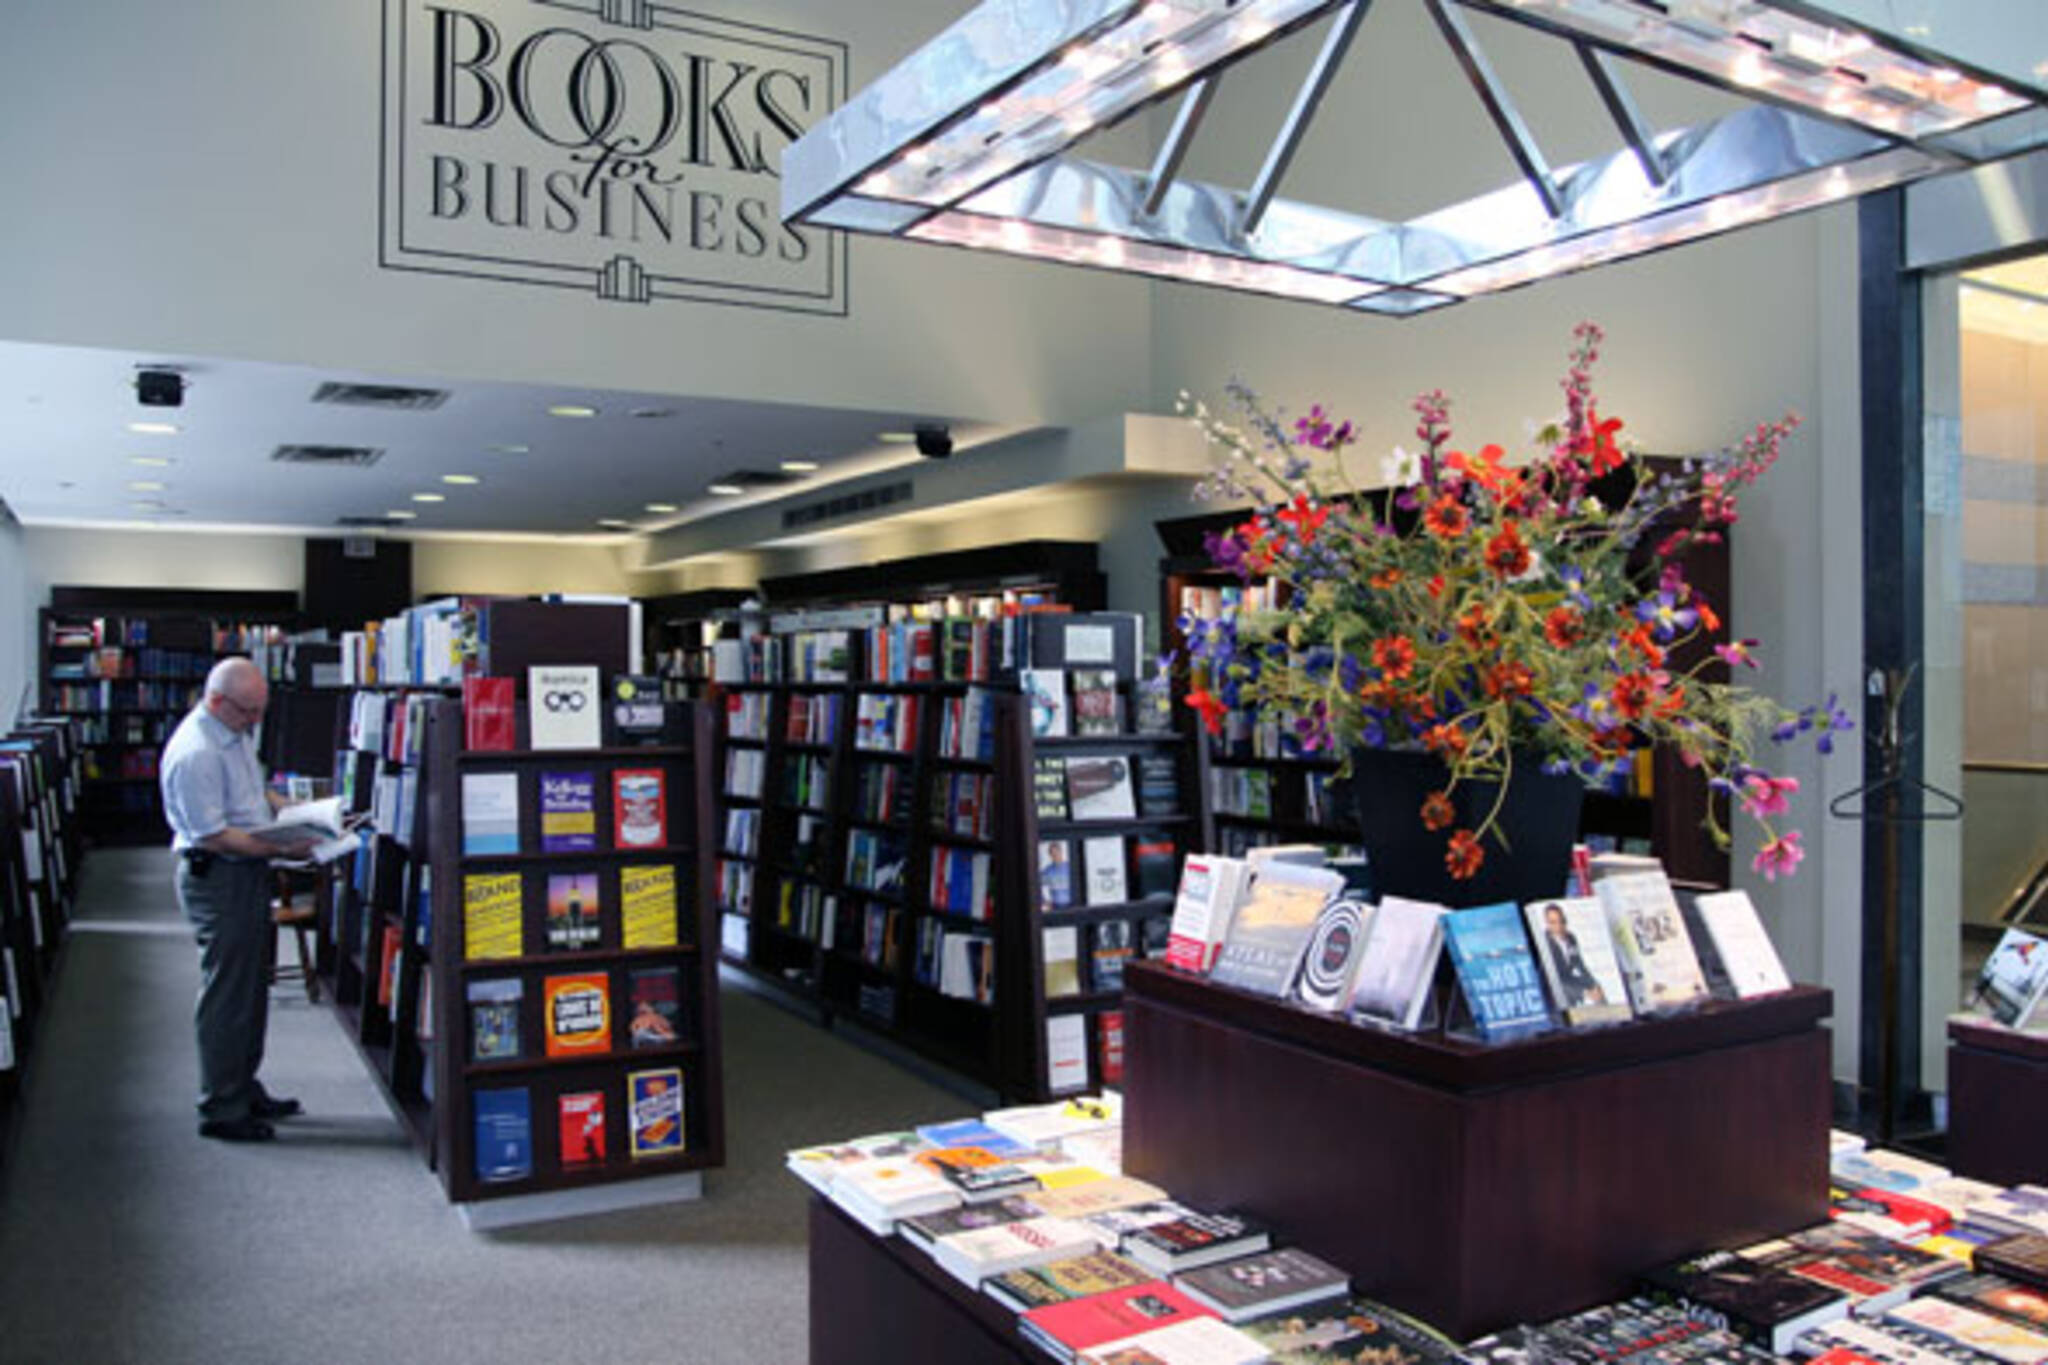 Books for Business